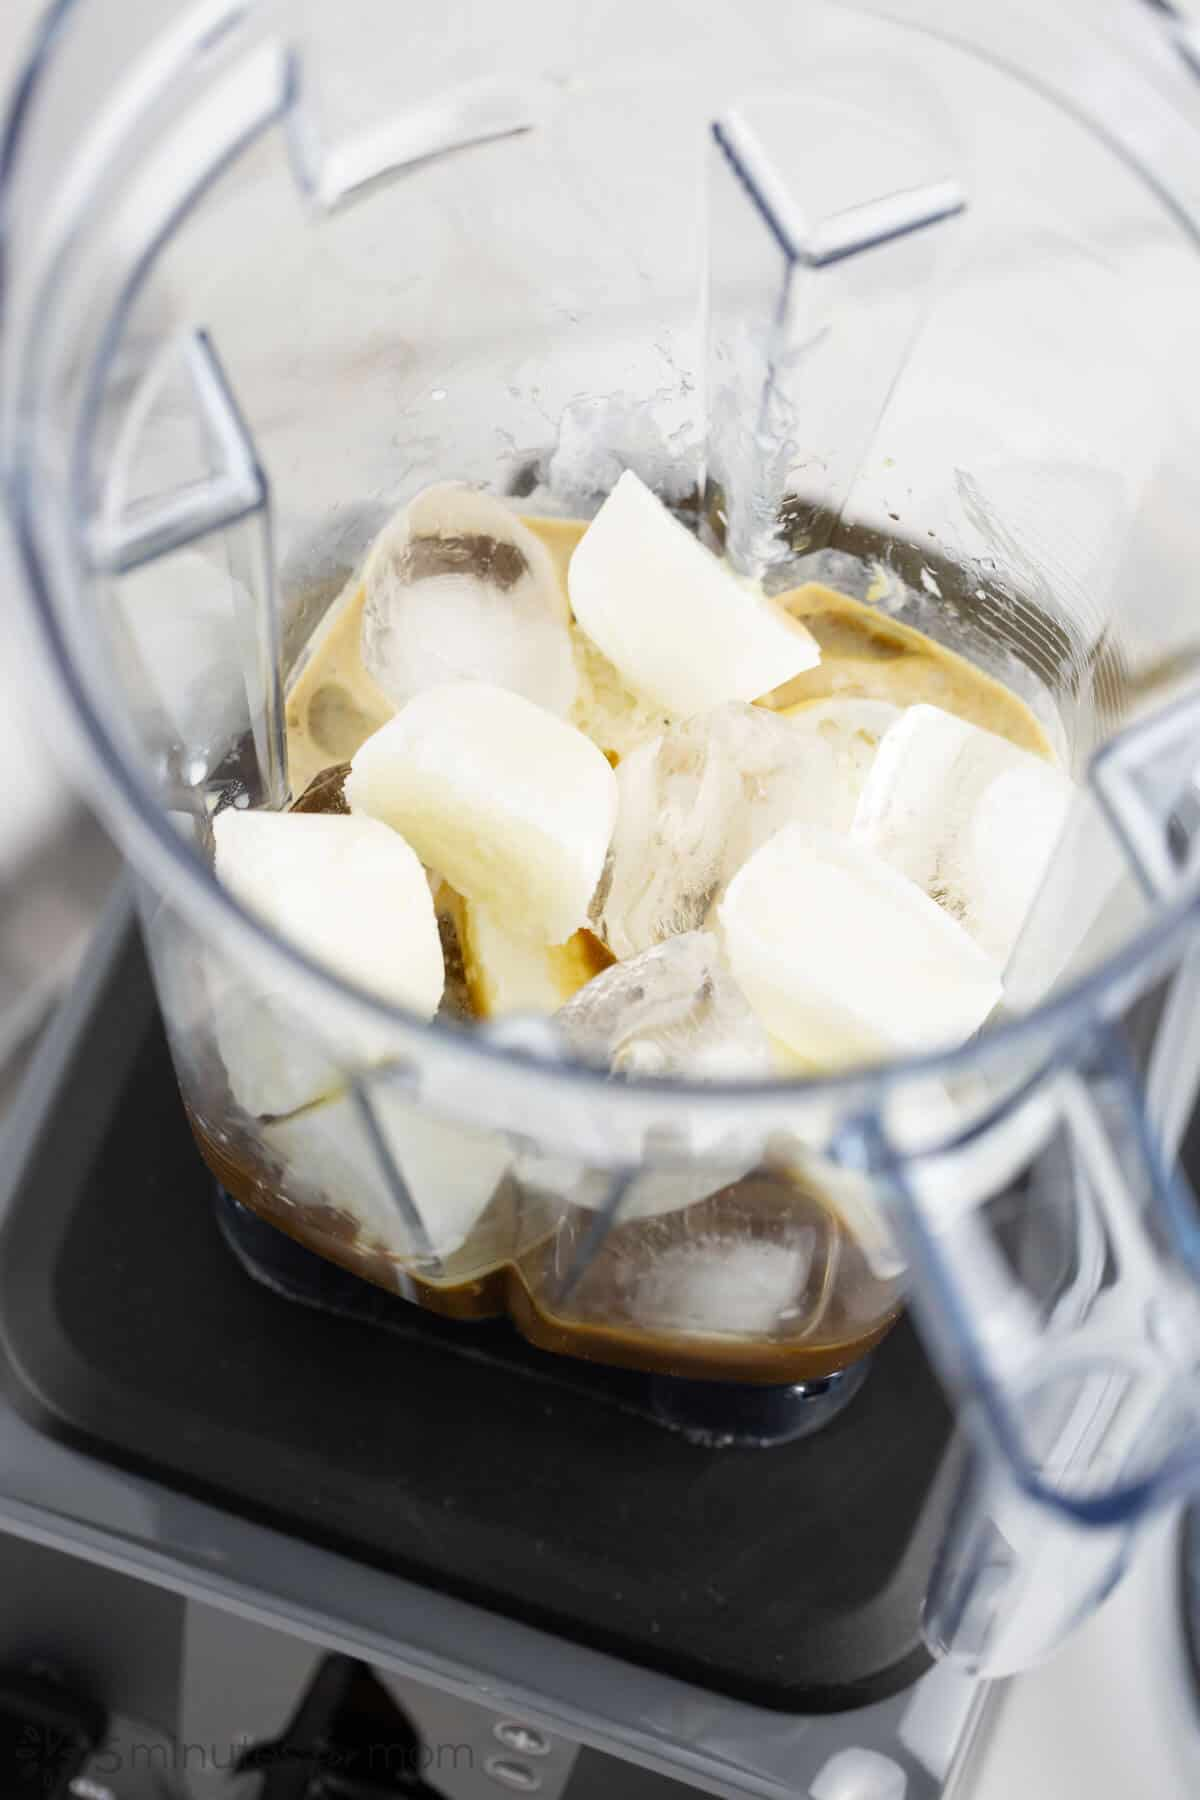 Blending milk cubes ice cubes and coffee